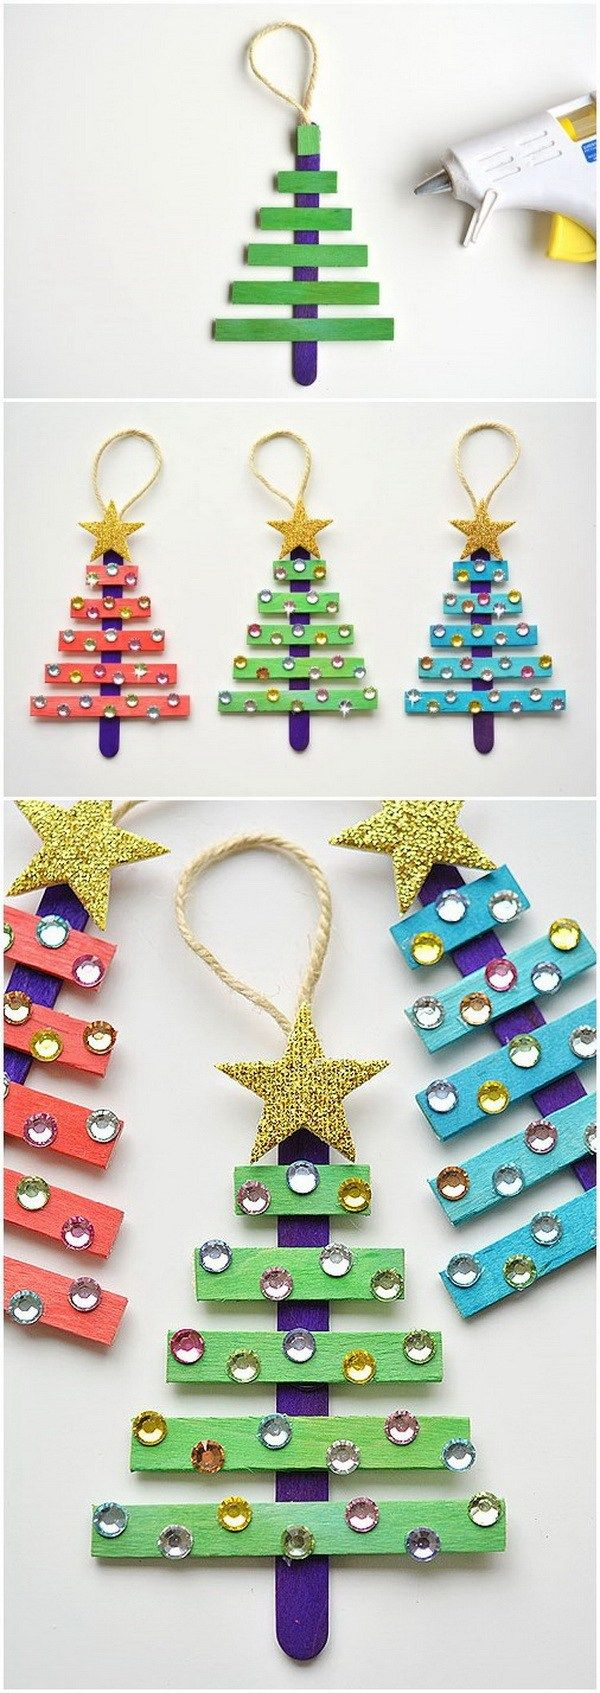 Glittering Popsicle Stick Christmas Trees. Get some packs of coloured popsicle sticks from the craft store or just paint them by yourself, arrange them in the shape of the Christmas tree and decorate with colorful rhinestones and a glittery star. These new ones look so amazing and sparkling when hang on your Christmas tree.